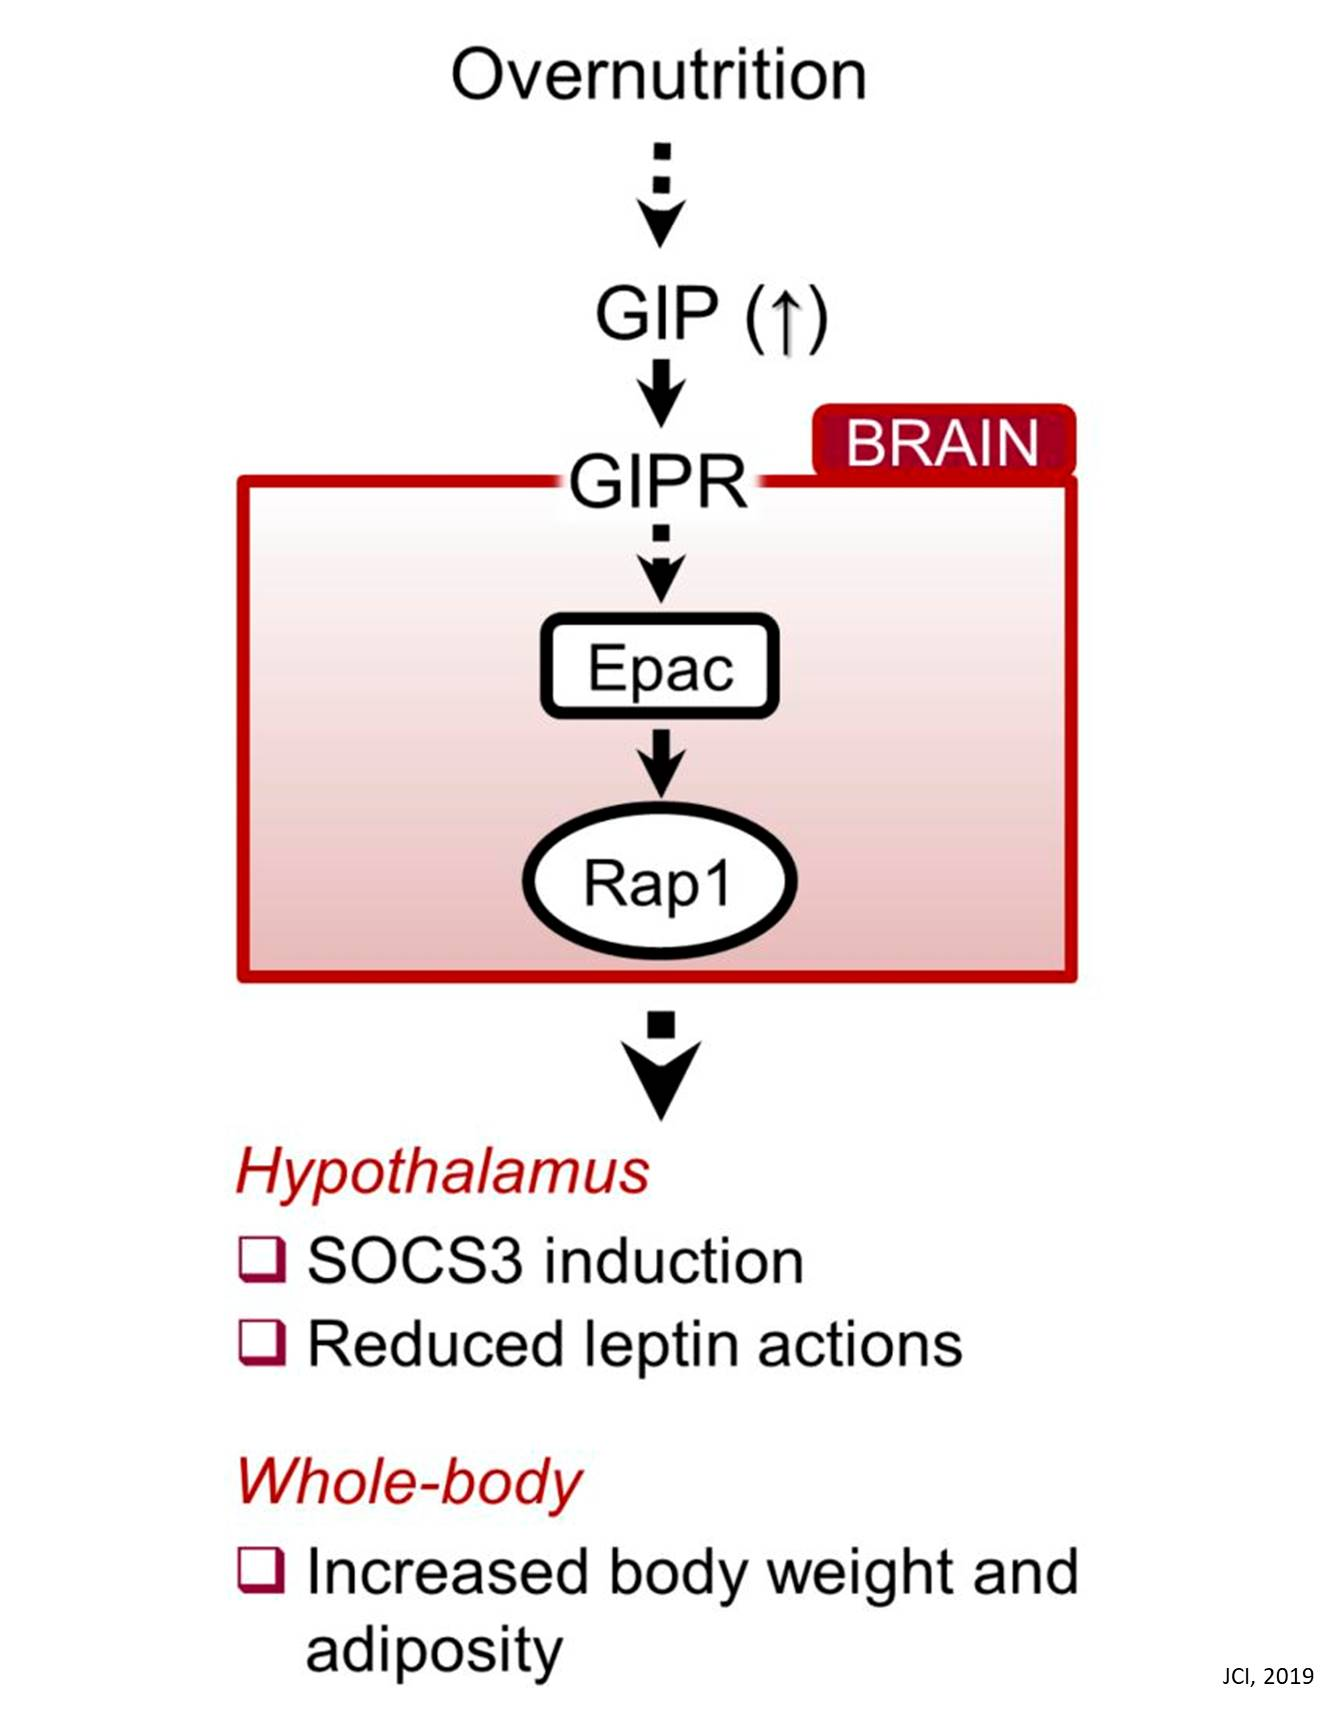 Gut-brain connection helps explain how overeating leads to obesity